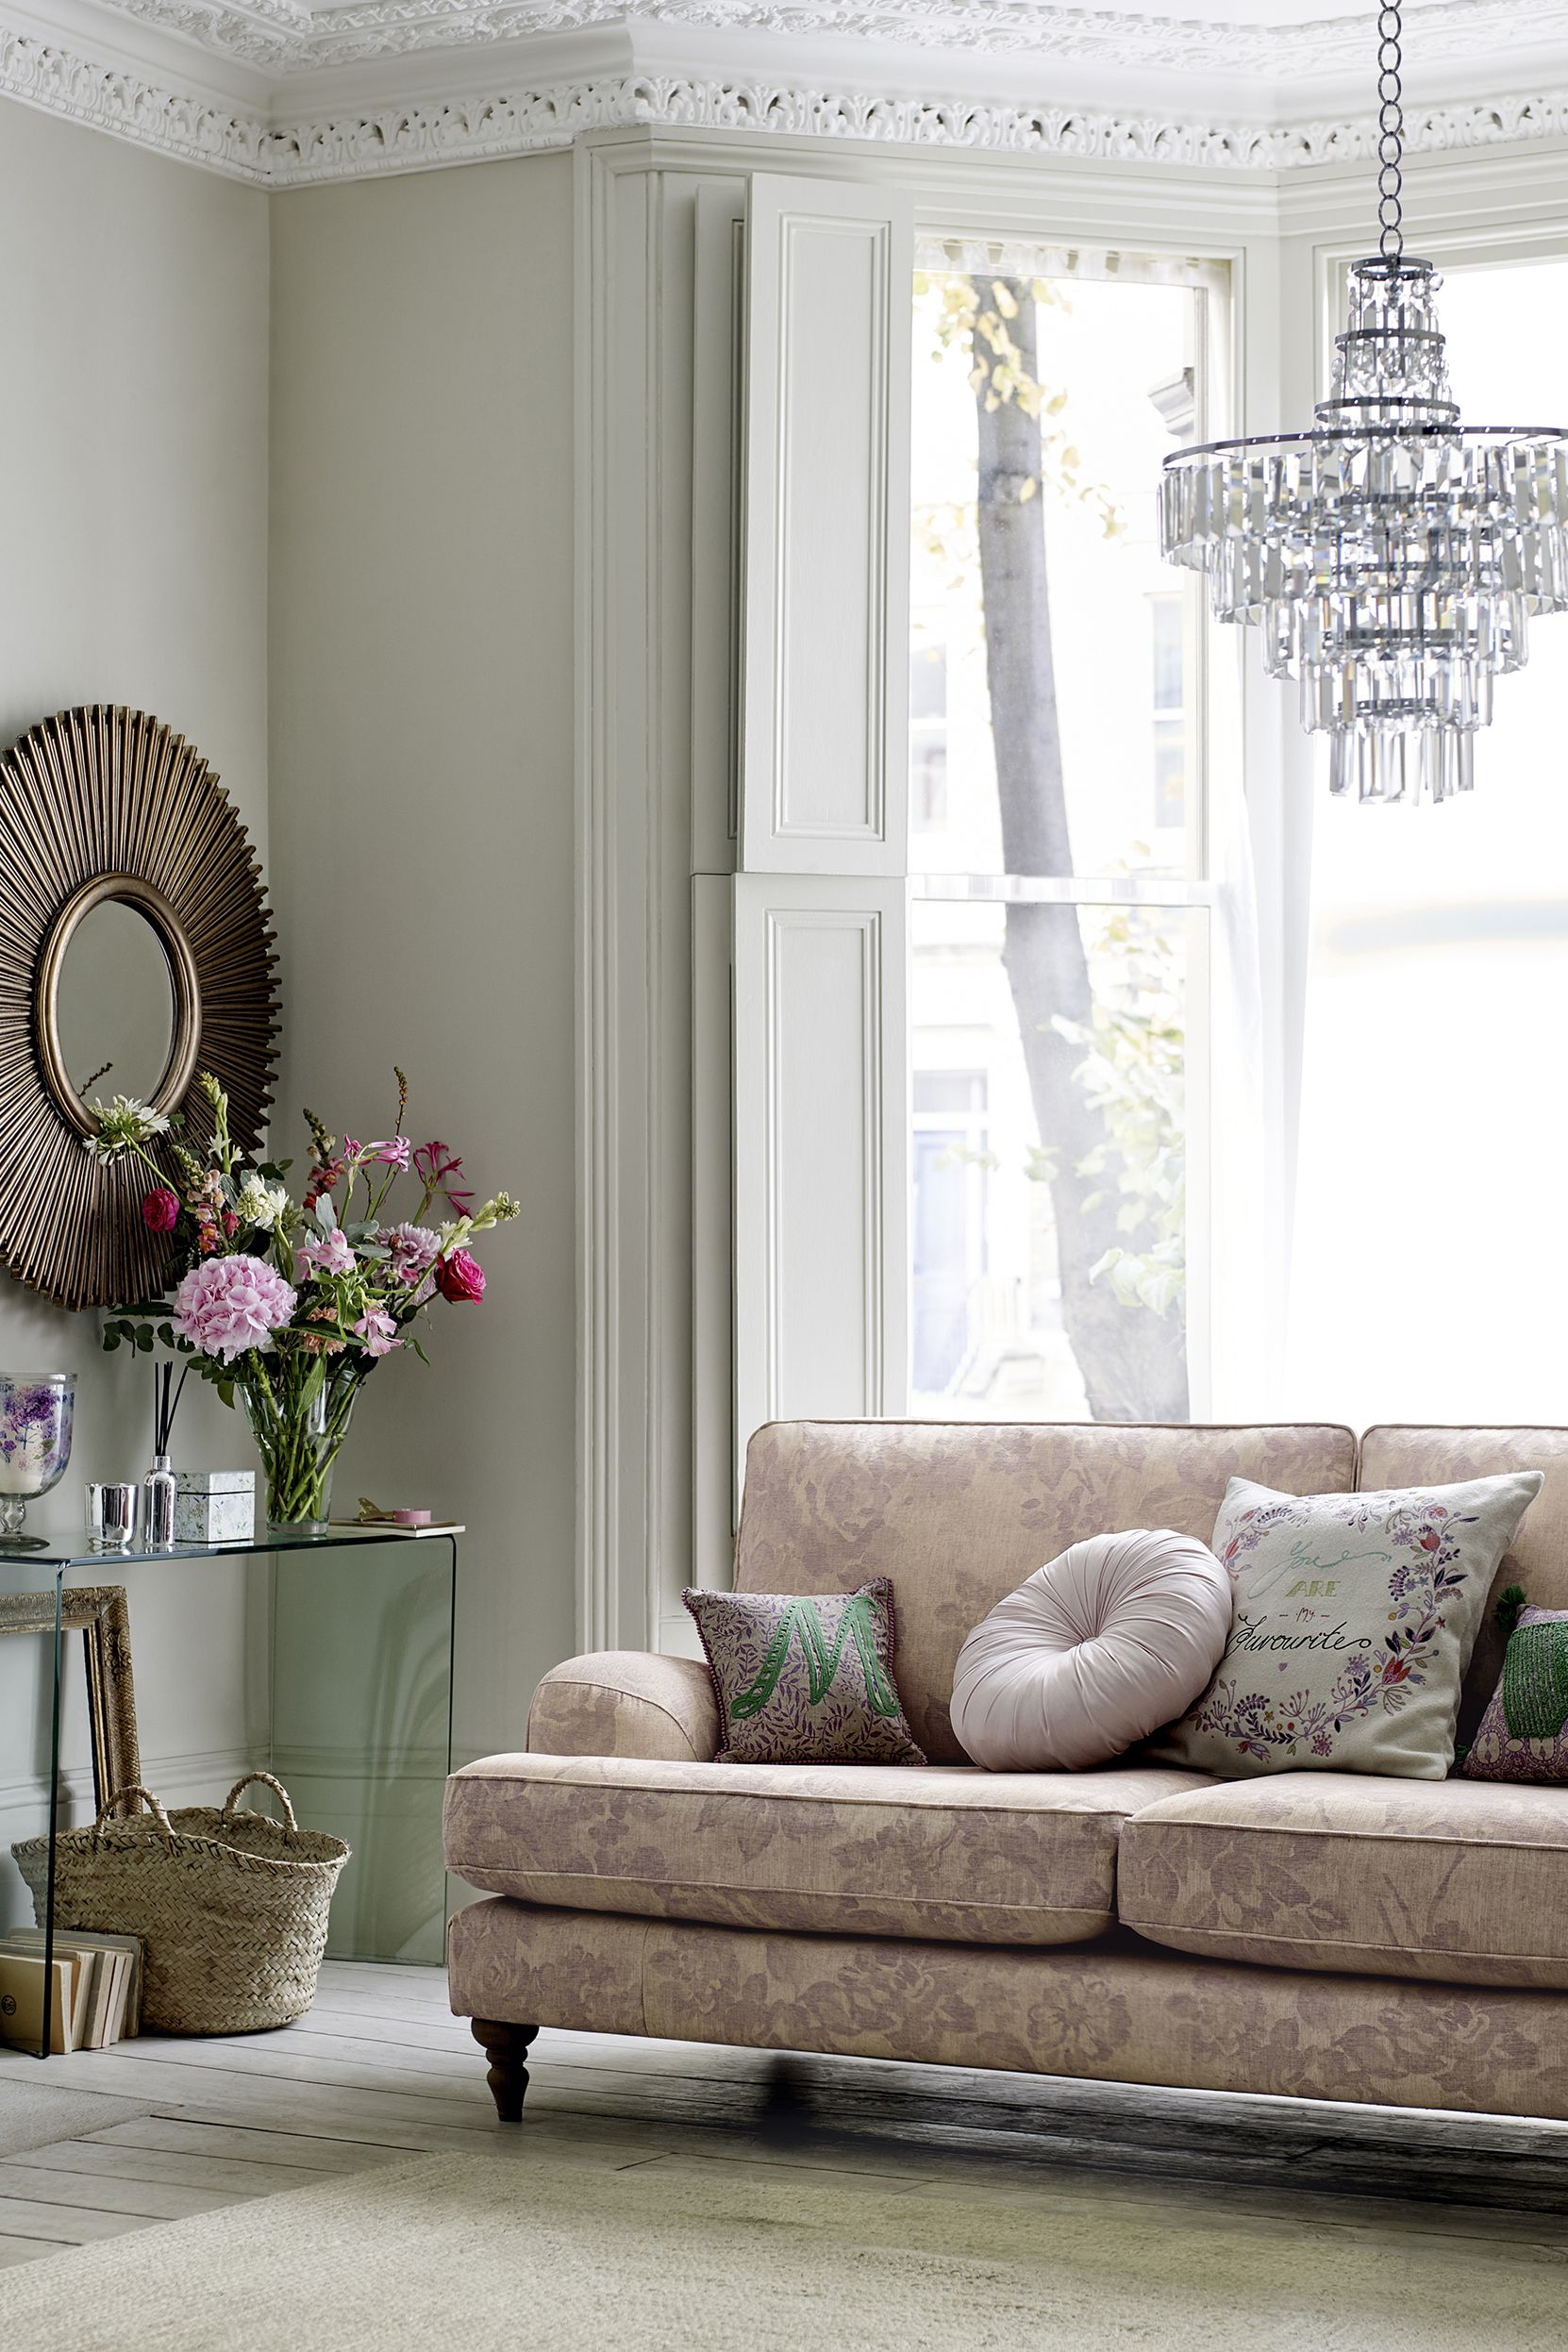 Opt For A Floral Patterned Sofa And Cushions In Your Living Room Nod To